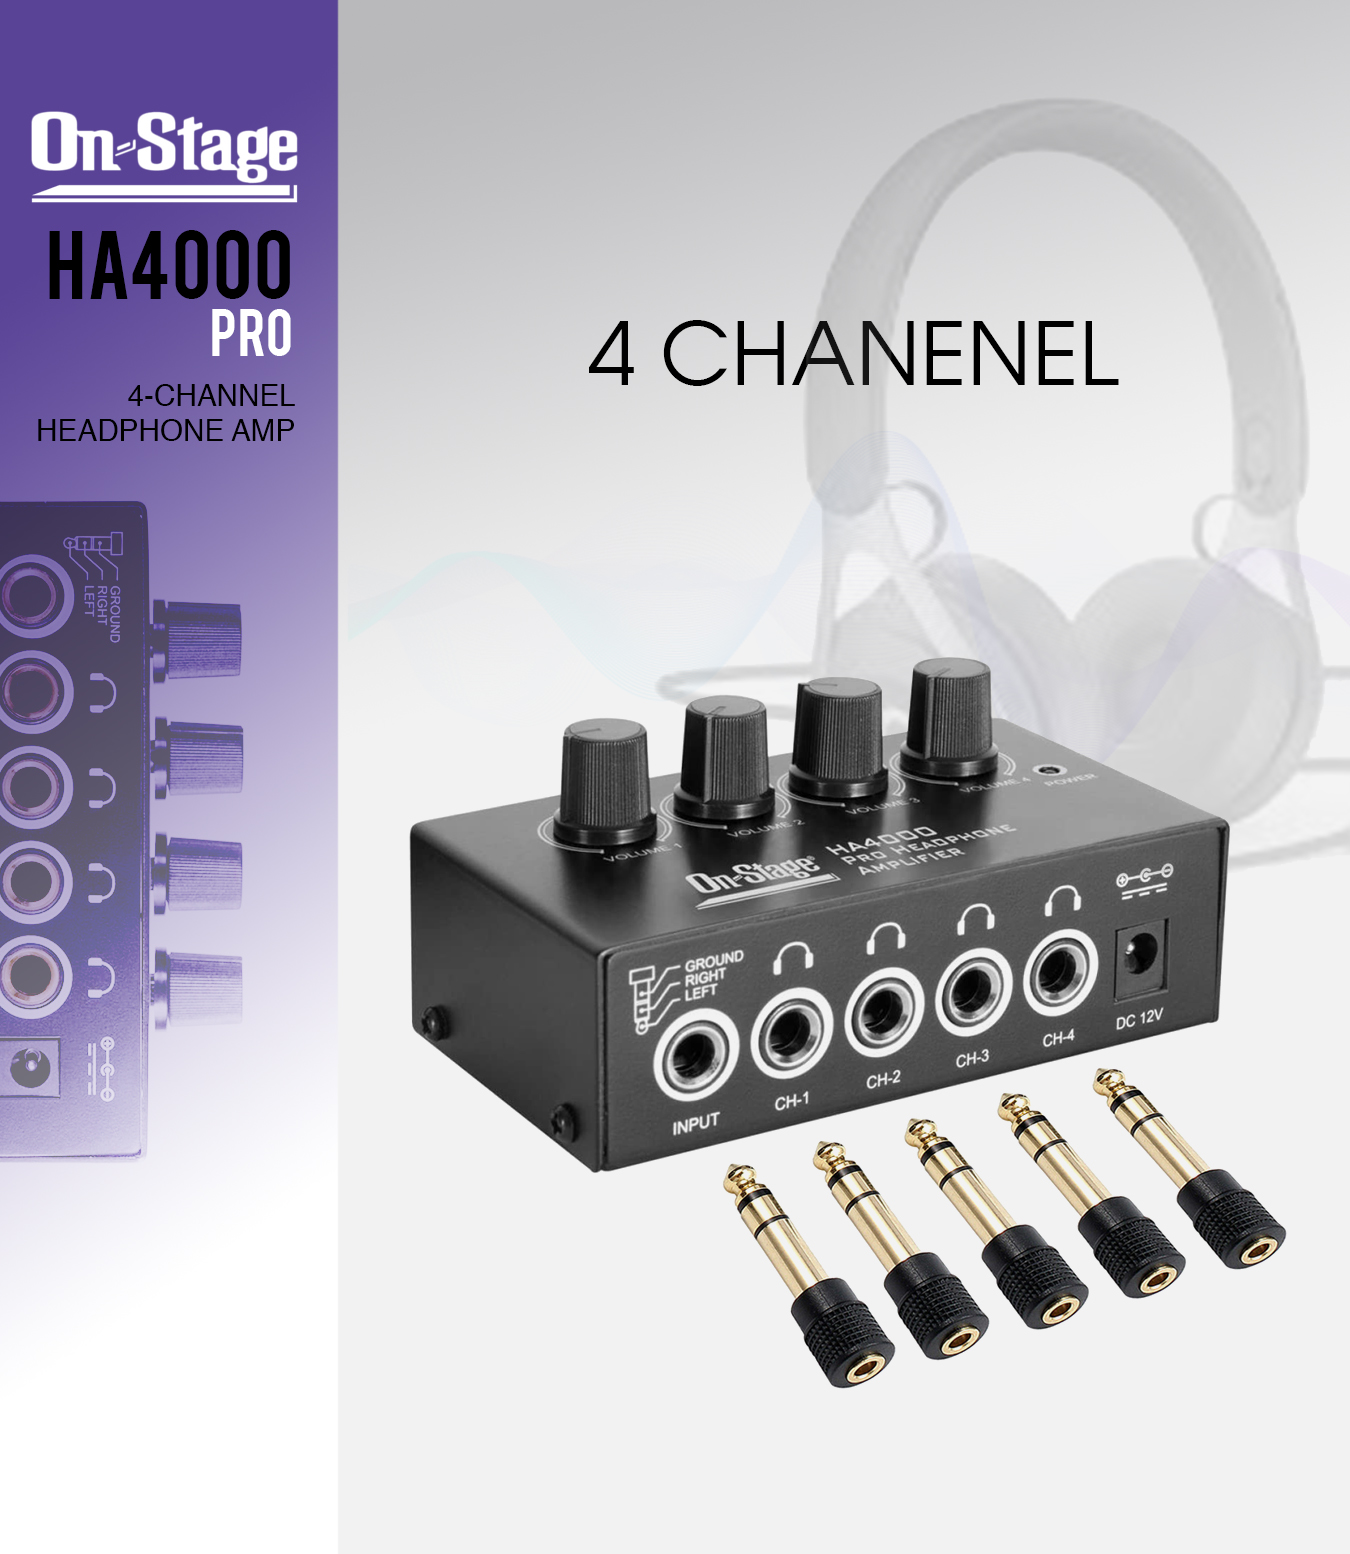 Thiết bị chia tai nghe On-Stage HA4000 4-Channel Headphone Amp